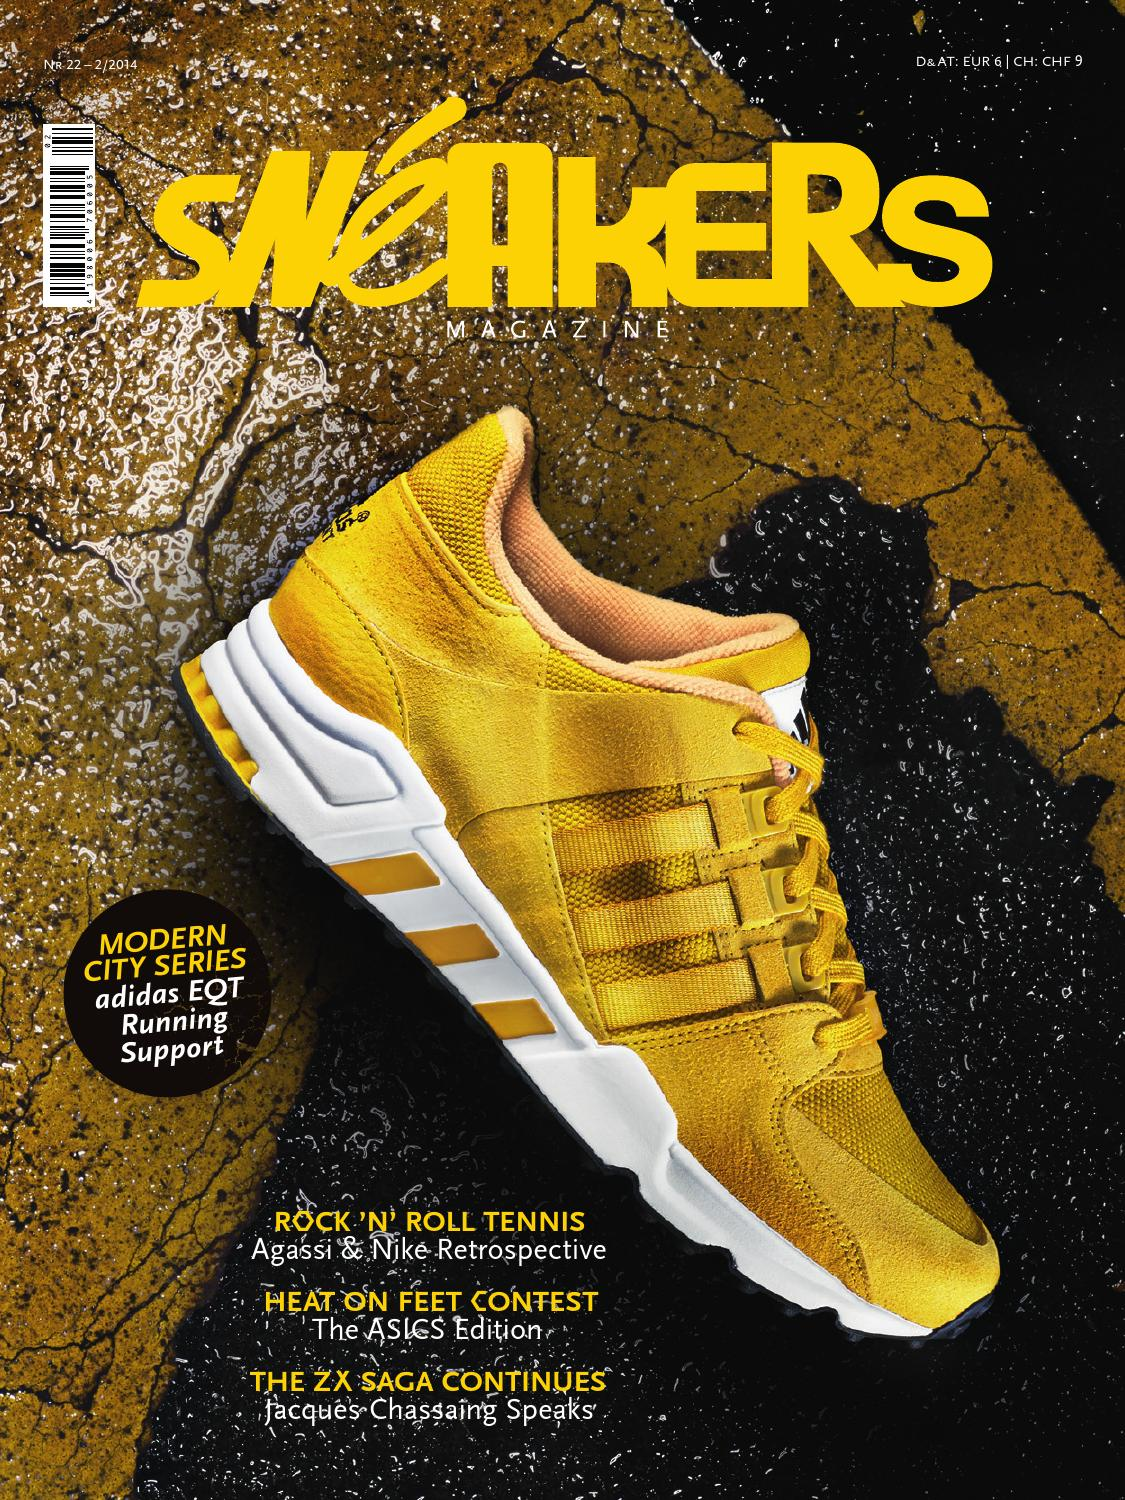 4ef7914fc5a1c Sneakers Magazine Issue 22 by Monday Publishing GmbH - issuu